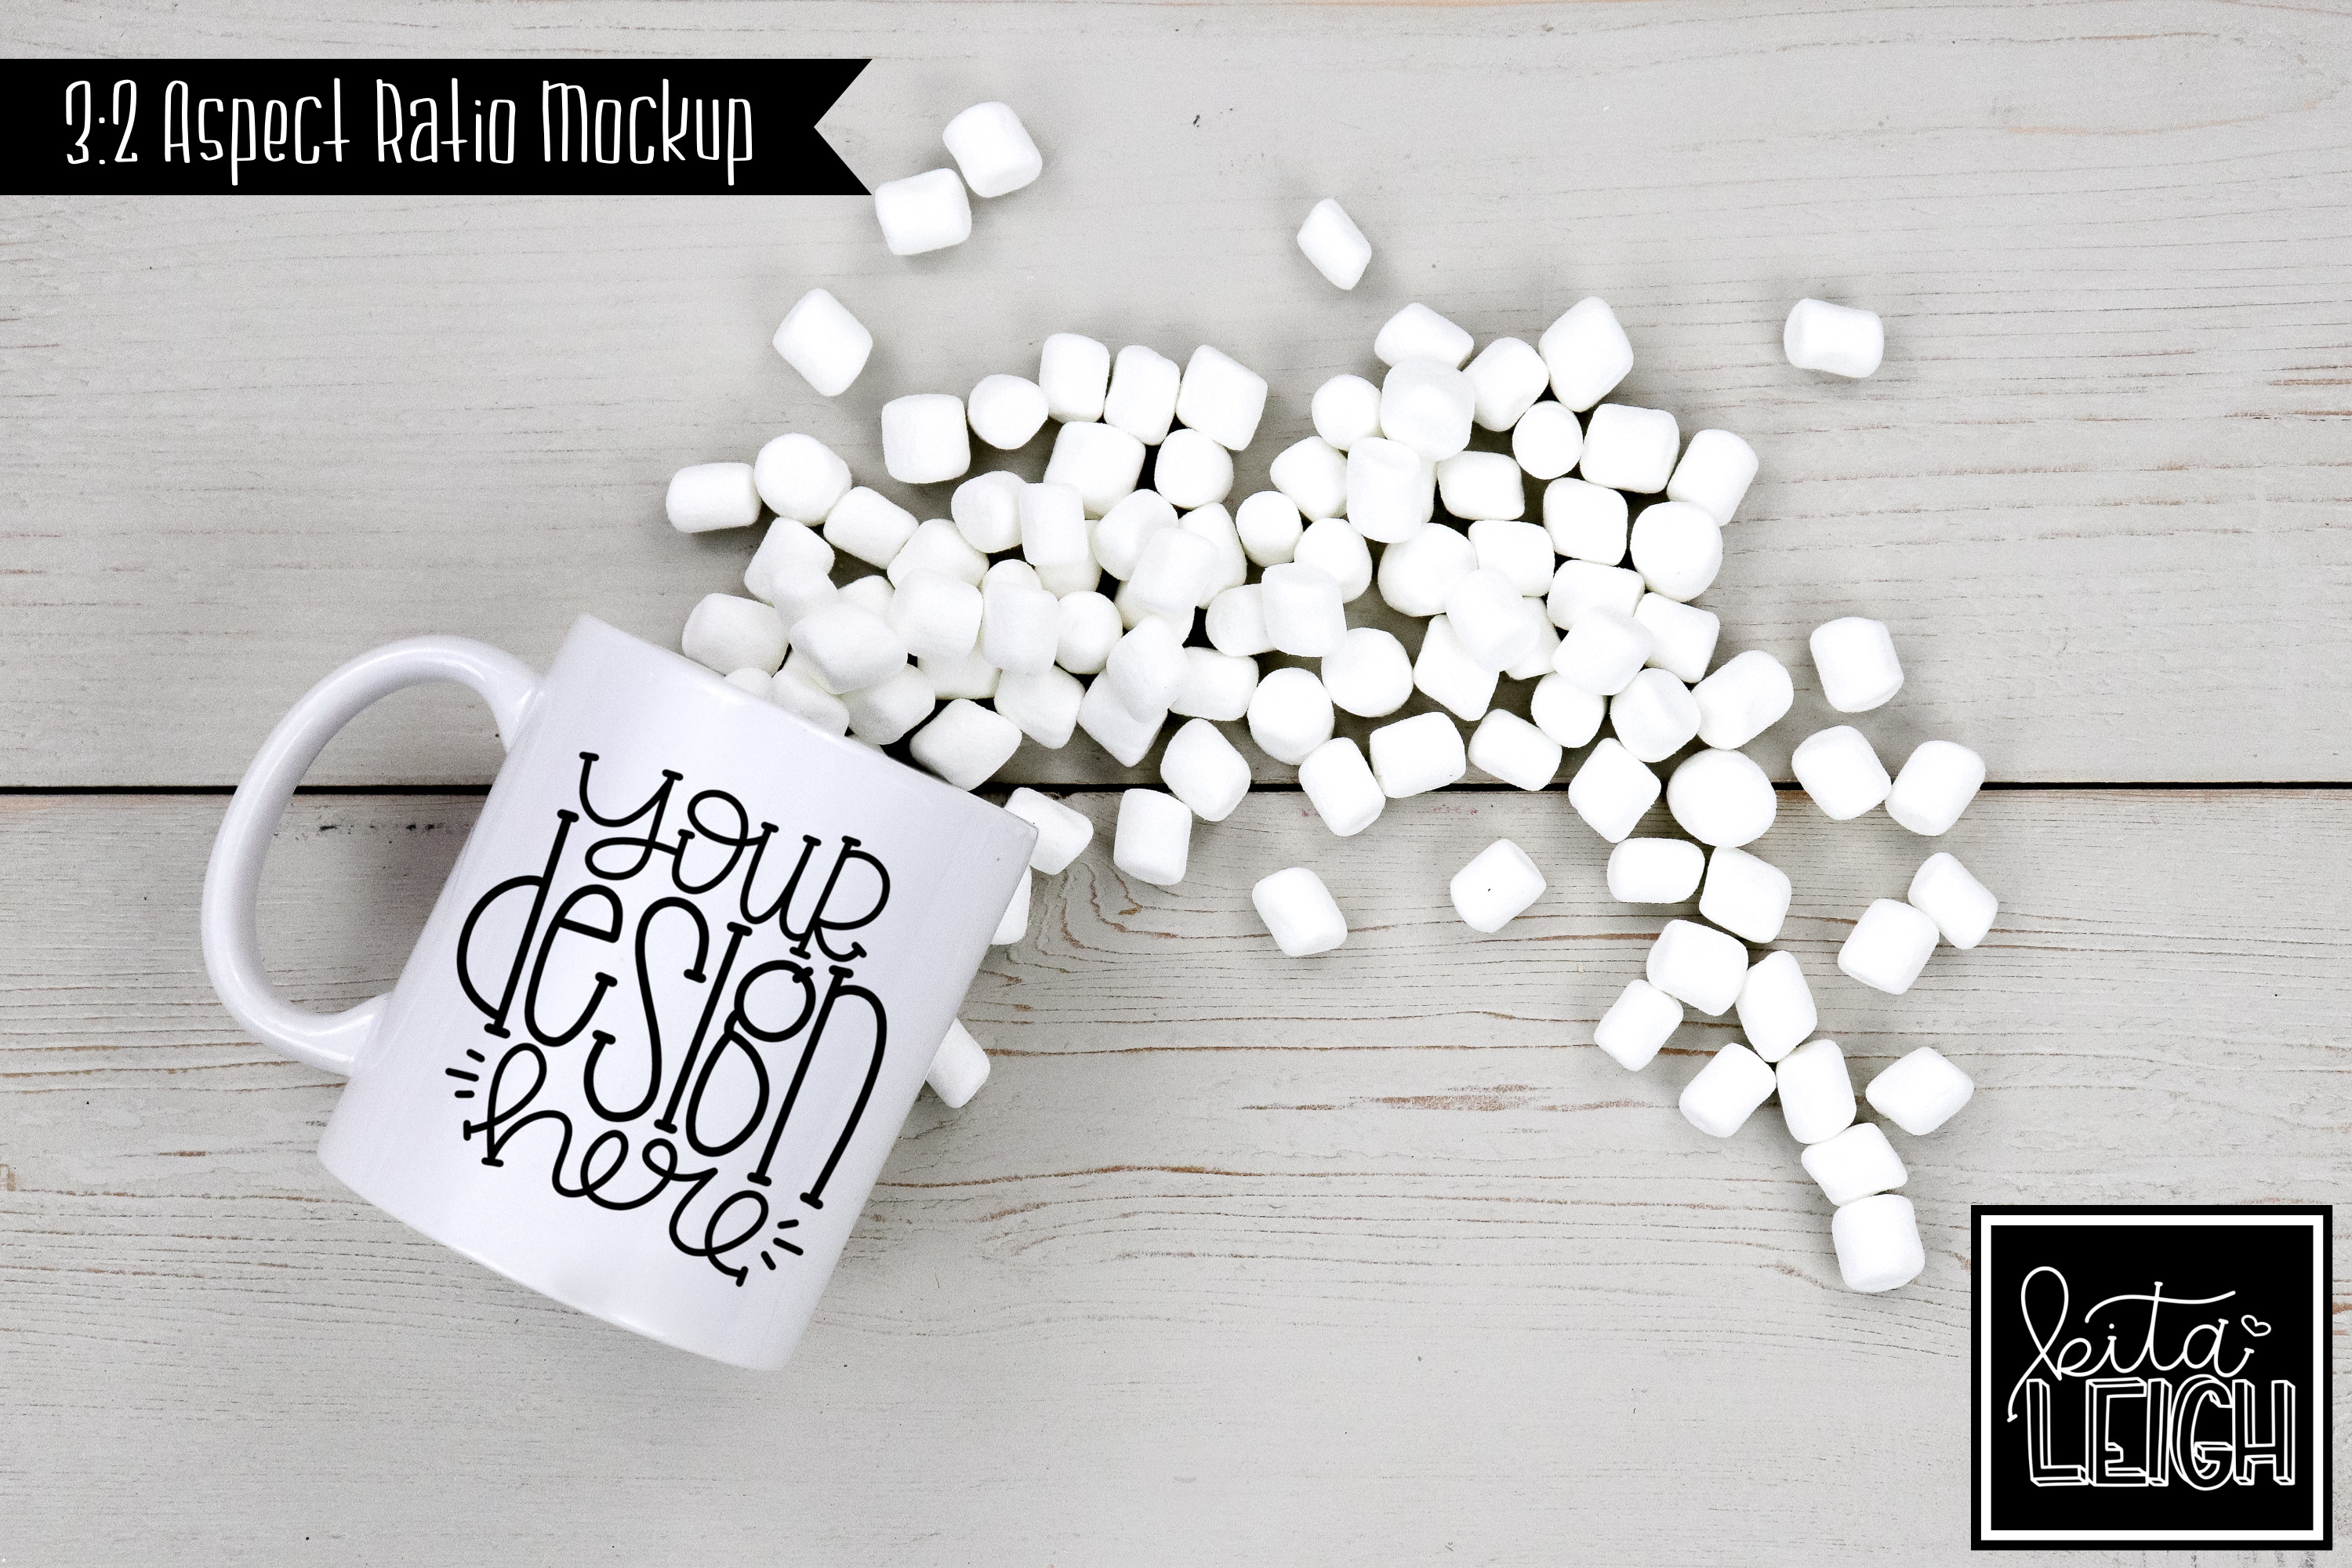 11 oz Mug Mockup with Chocolate, Coffee, Tea, and Mallows example image 5